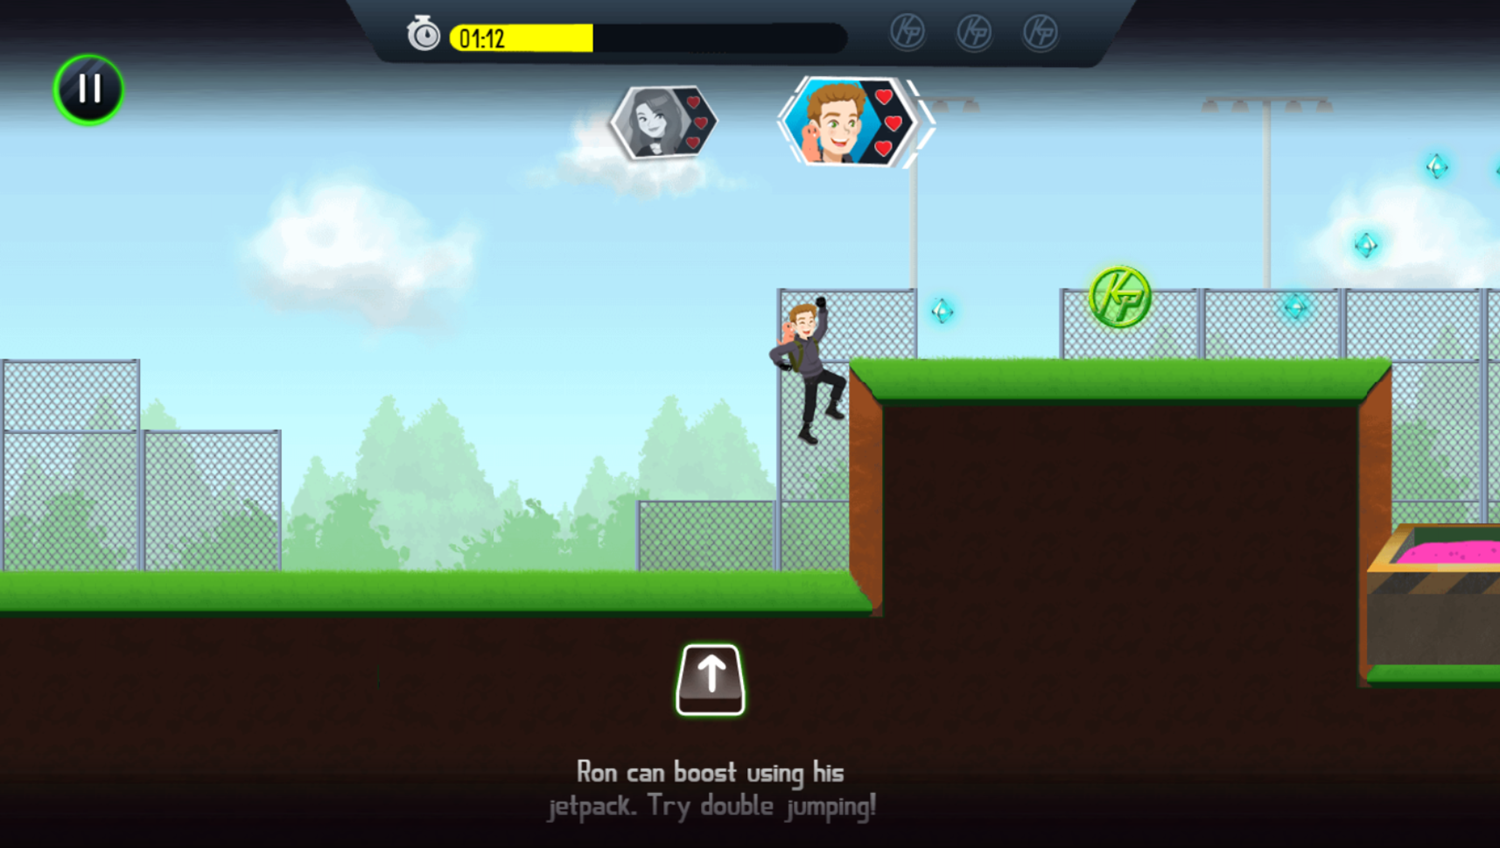 Kim Possible Mission Improbable Game How To Boost Screenshot.